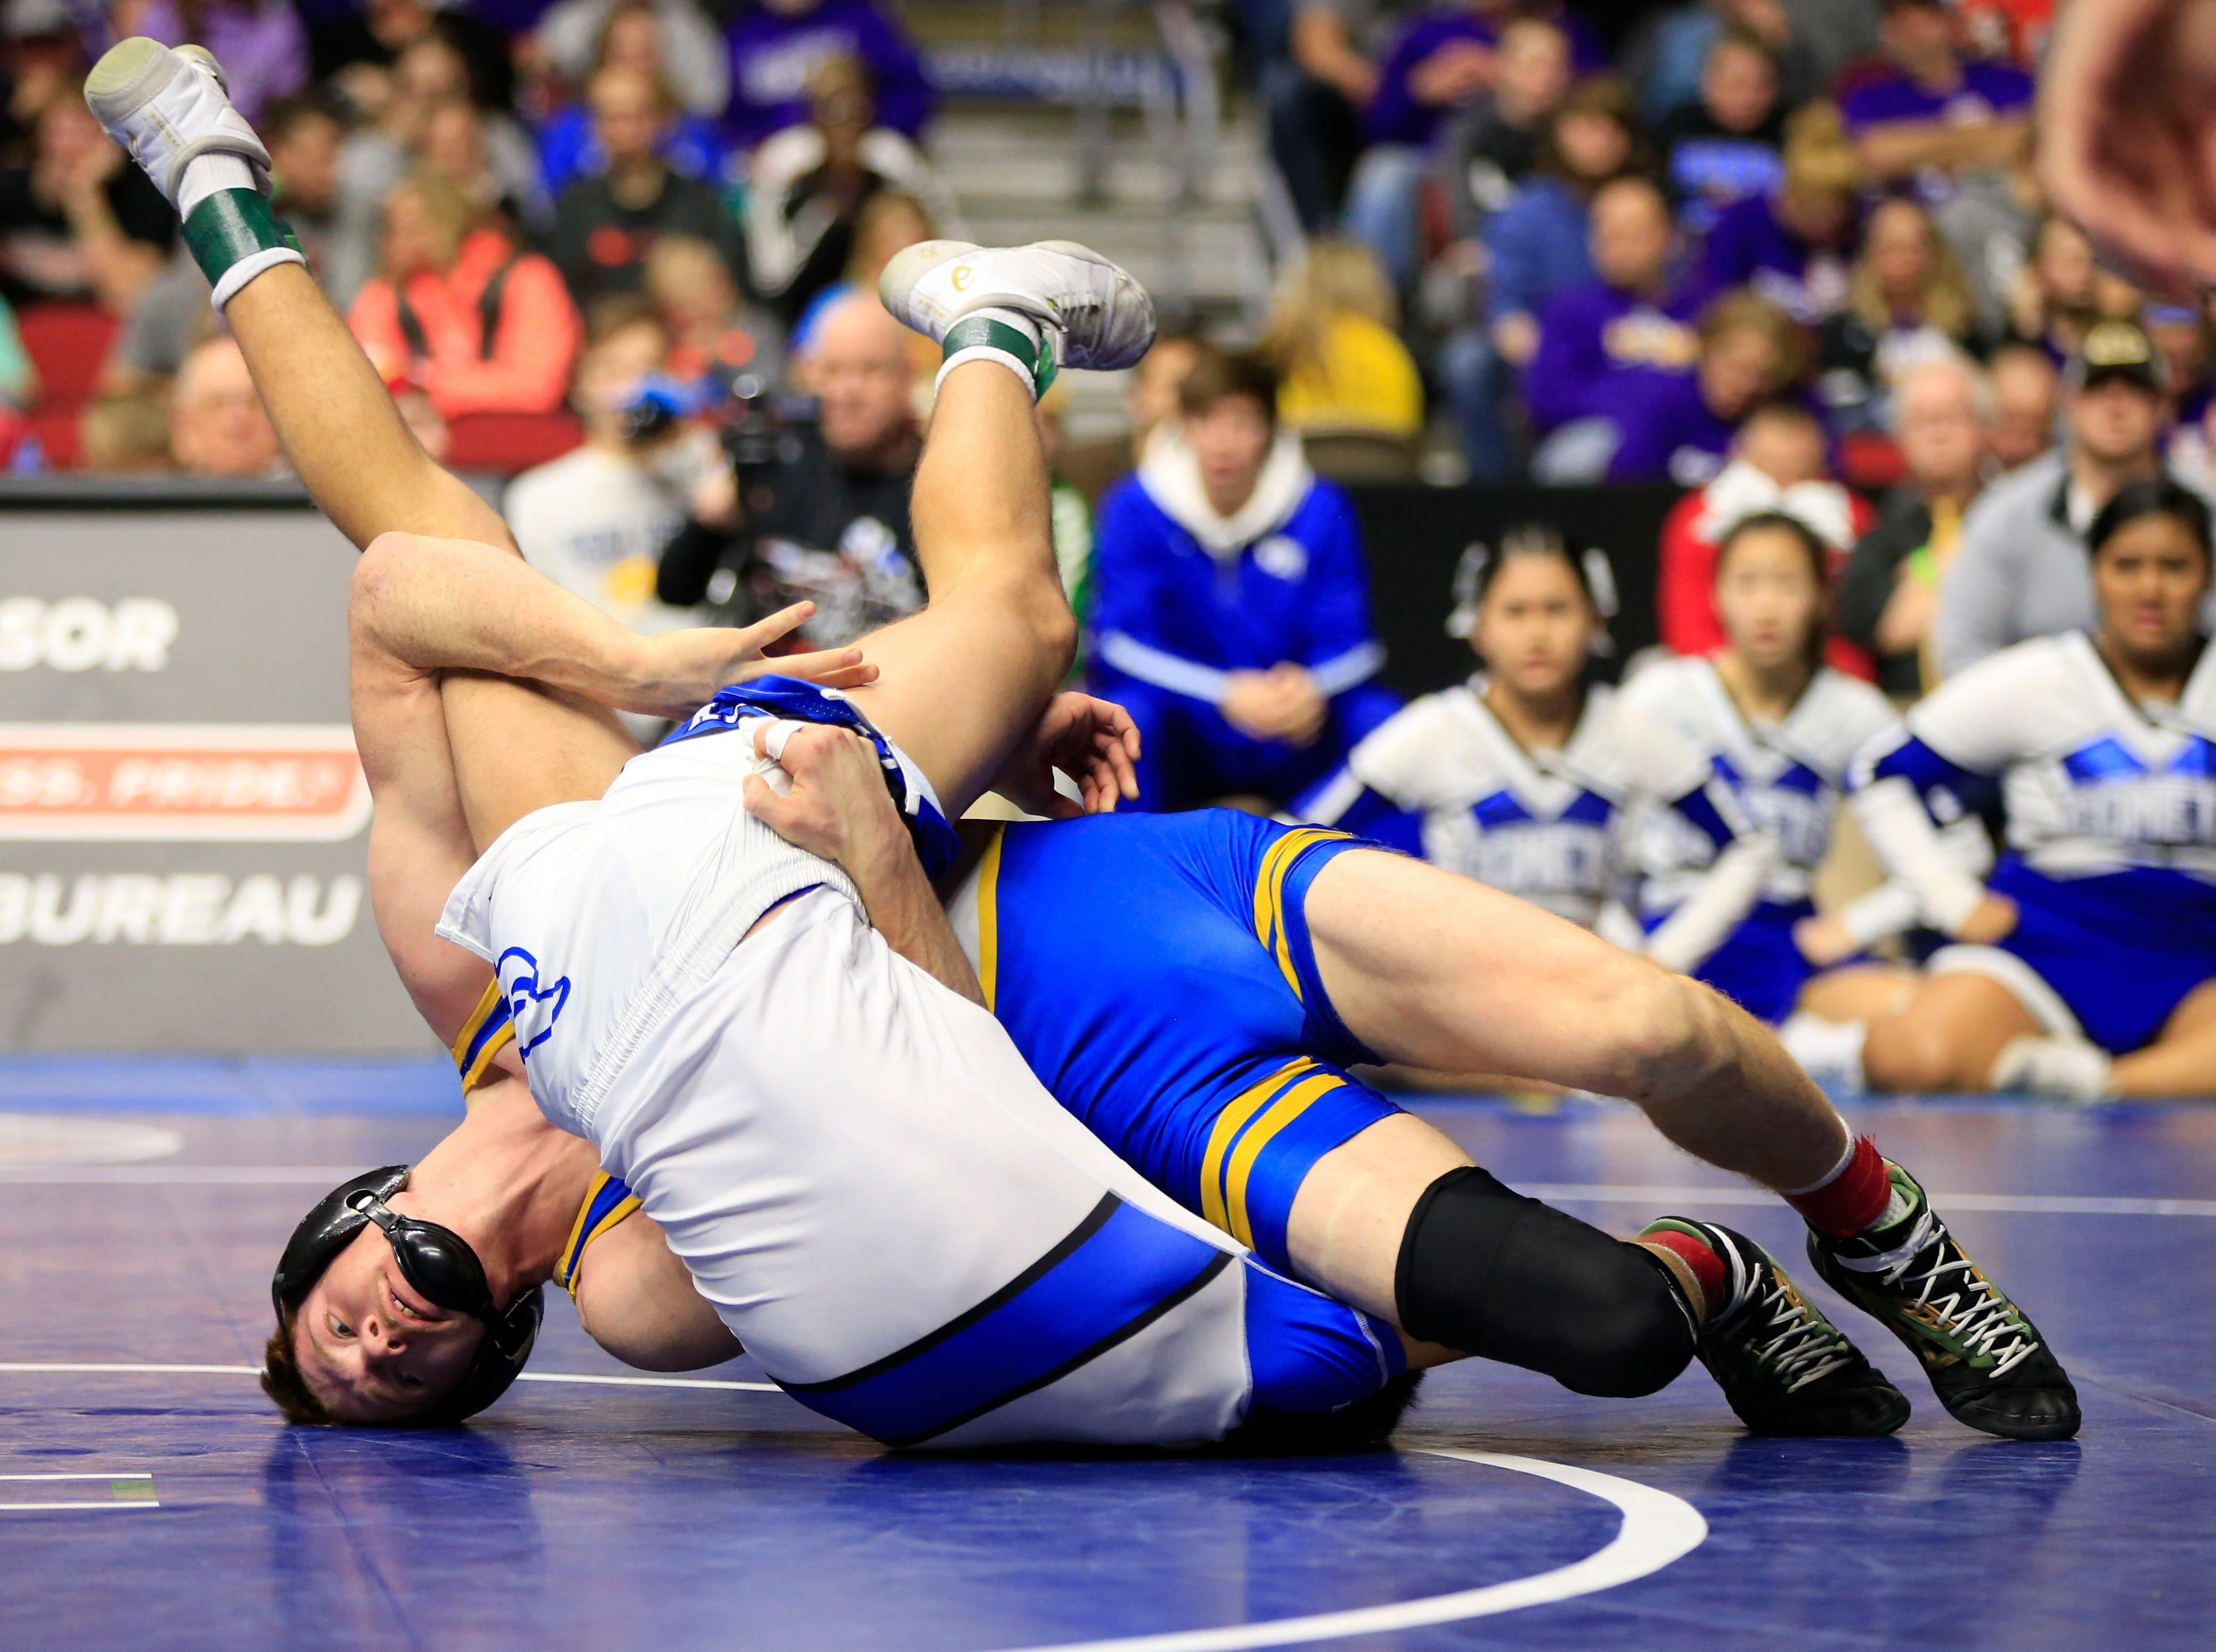 Joey Busse (Humboldt) beats Will Esmoil of West Liberty for the 2A wrestling state championship at 145 pounds Saturday, Feb. 16, 2019.